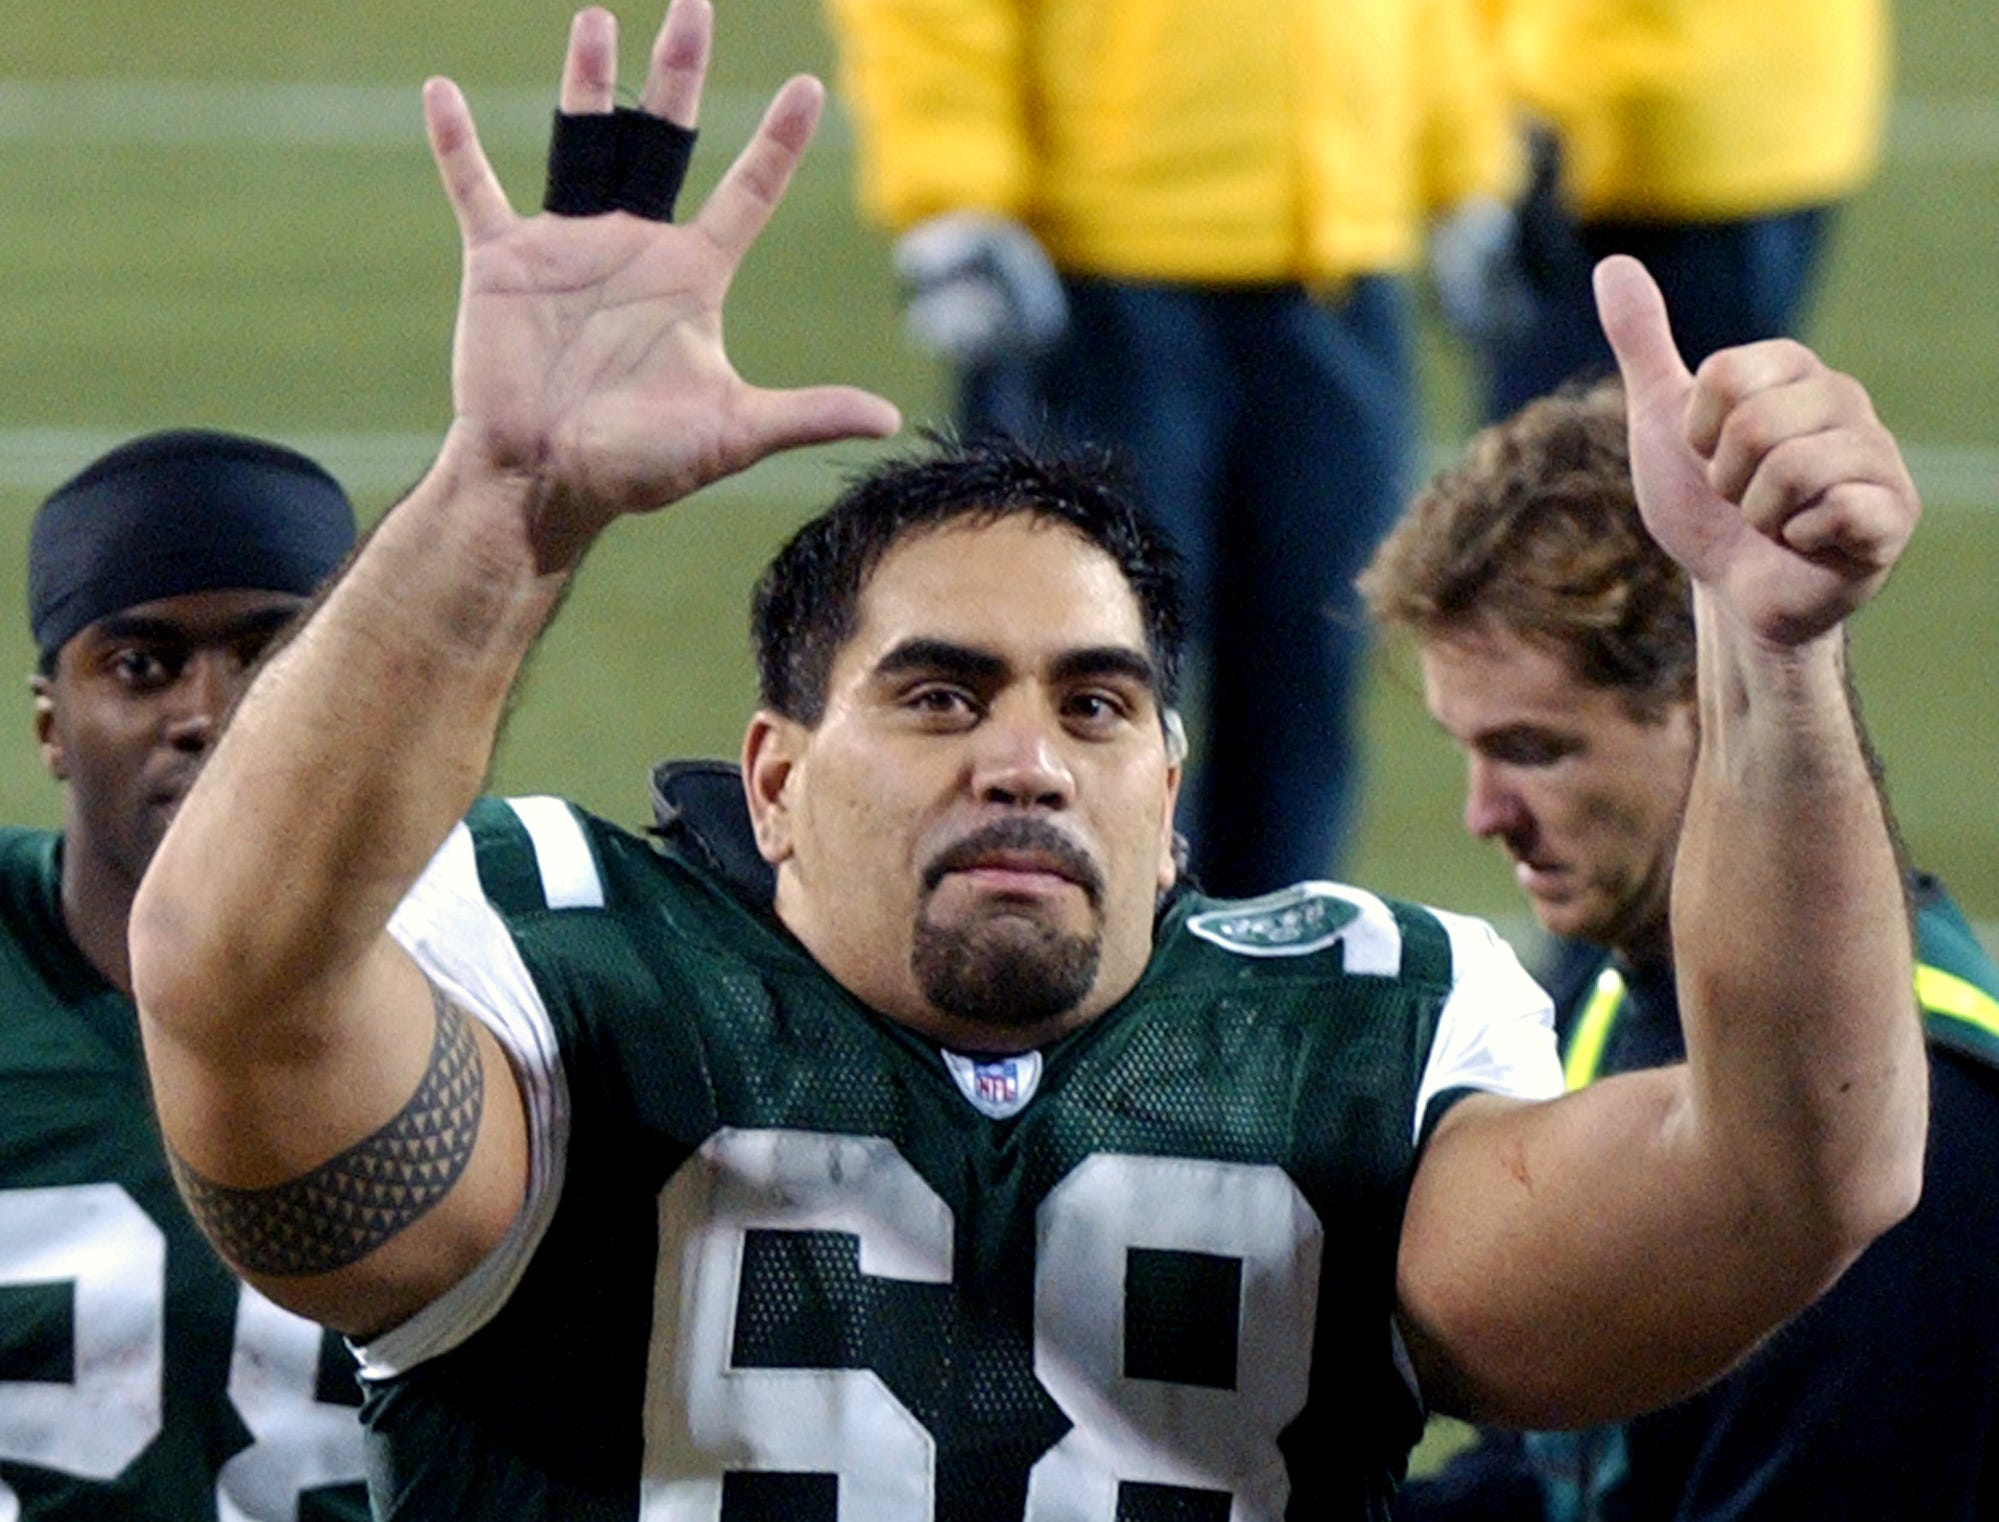 Kevin Mawae, offensive lineman for the Seattle Seahawks (1994-97), New York Jets (1998-2005) and Tennessee Titans (2006-09).